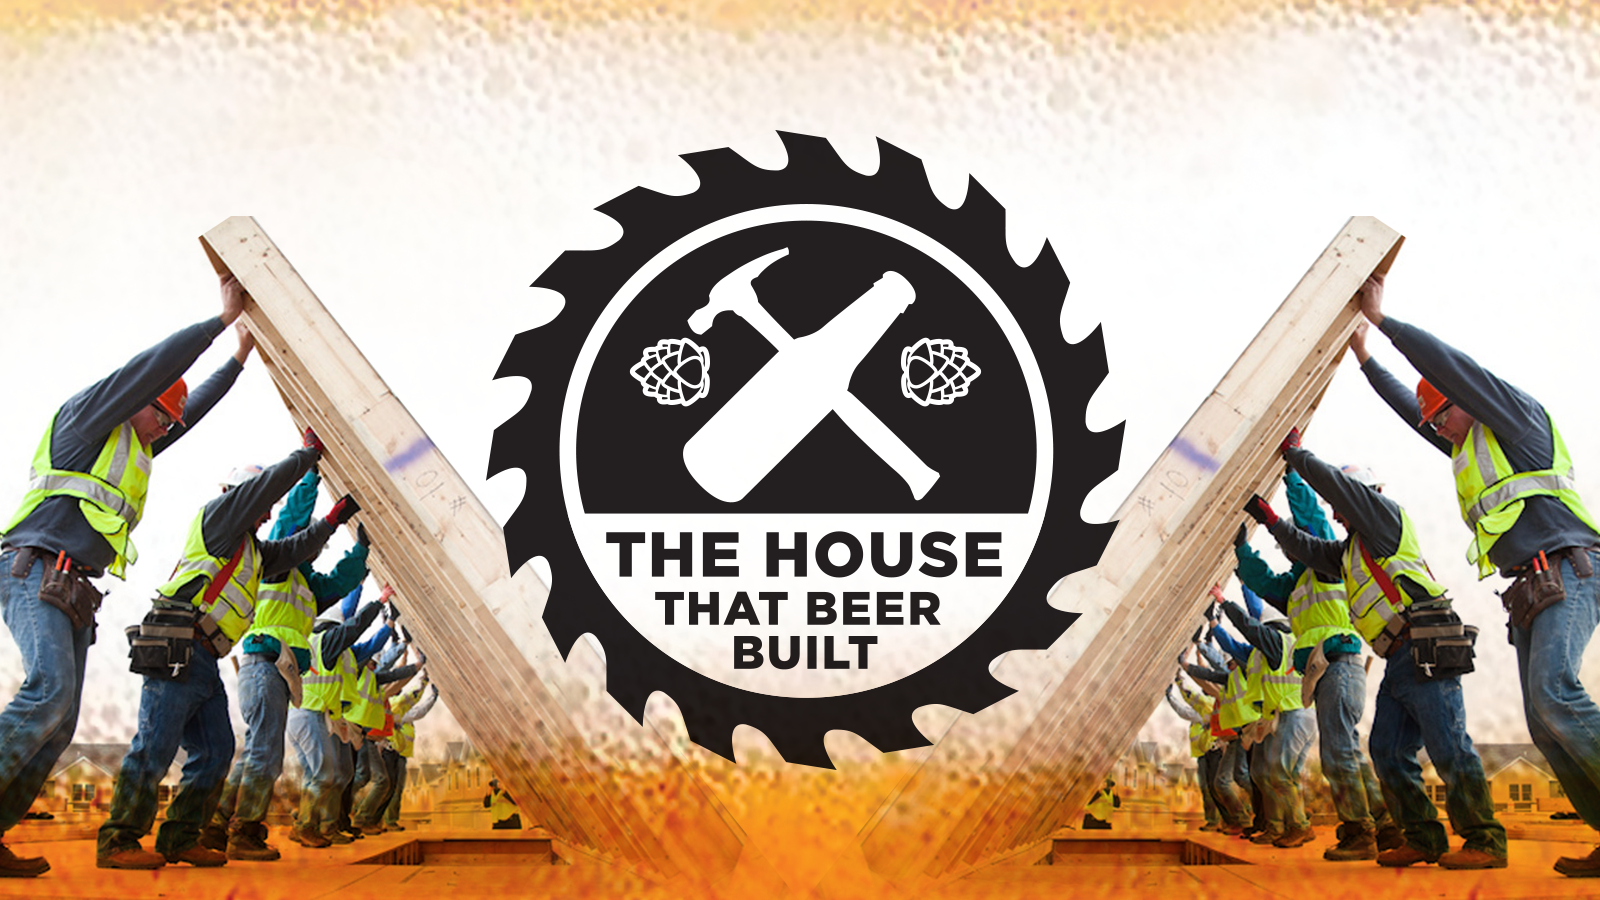 The House that Beer Built - Twin Cities Minnesota